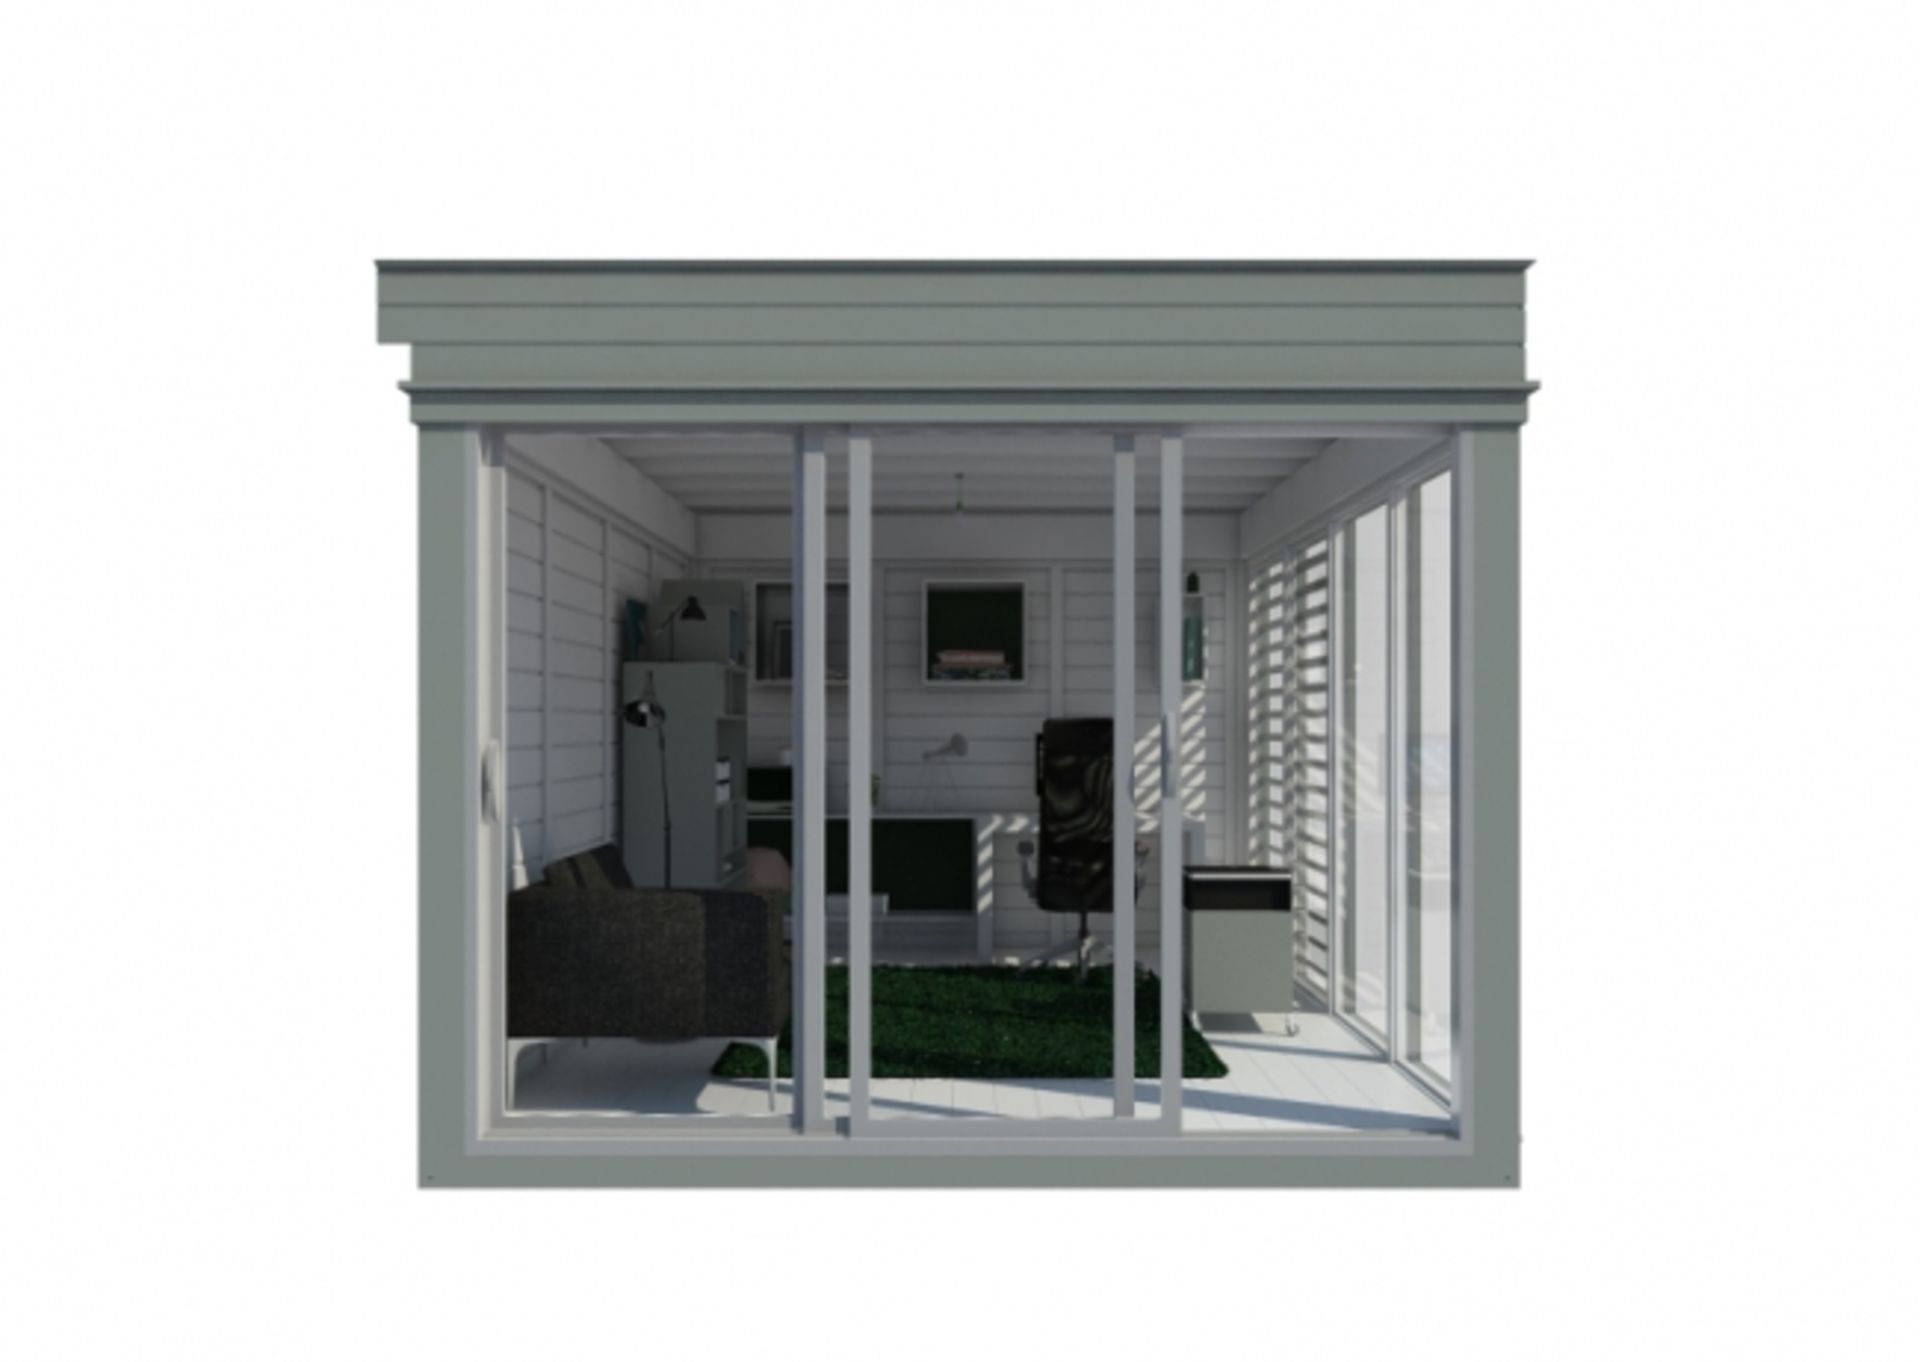 Lot 18000 - V Brand New Insulated 3m x 4m Garden Office Cube With Glass Sliding Doors - Sunscreen Sections -